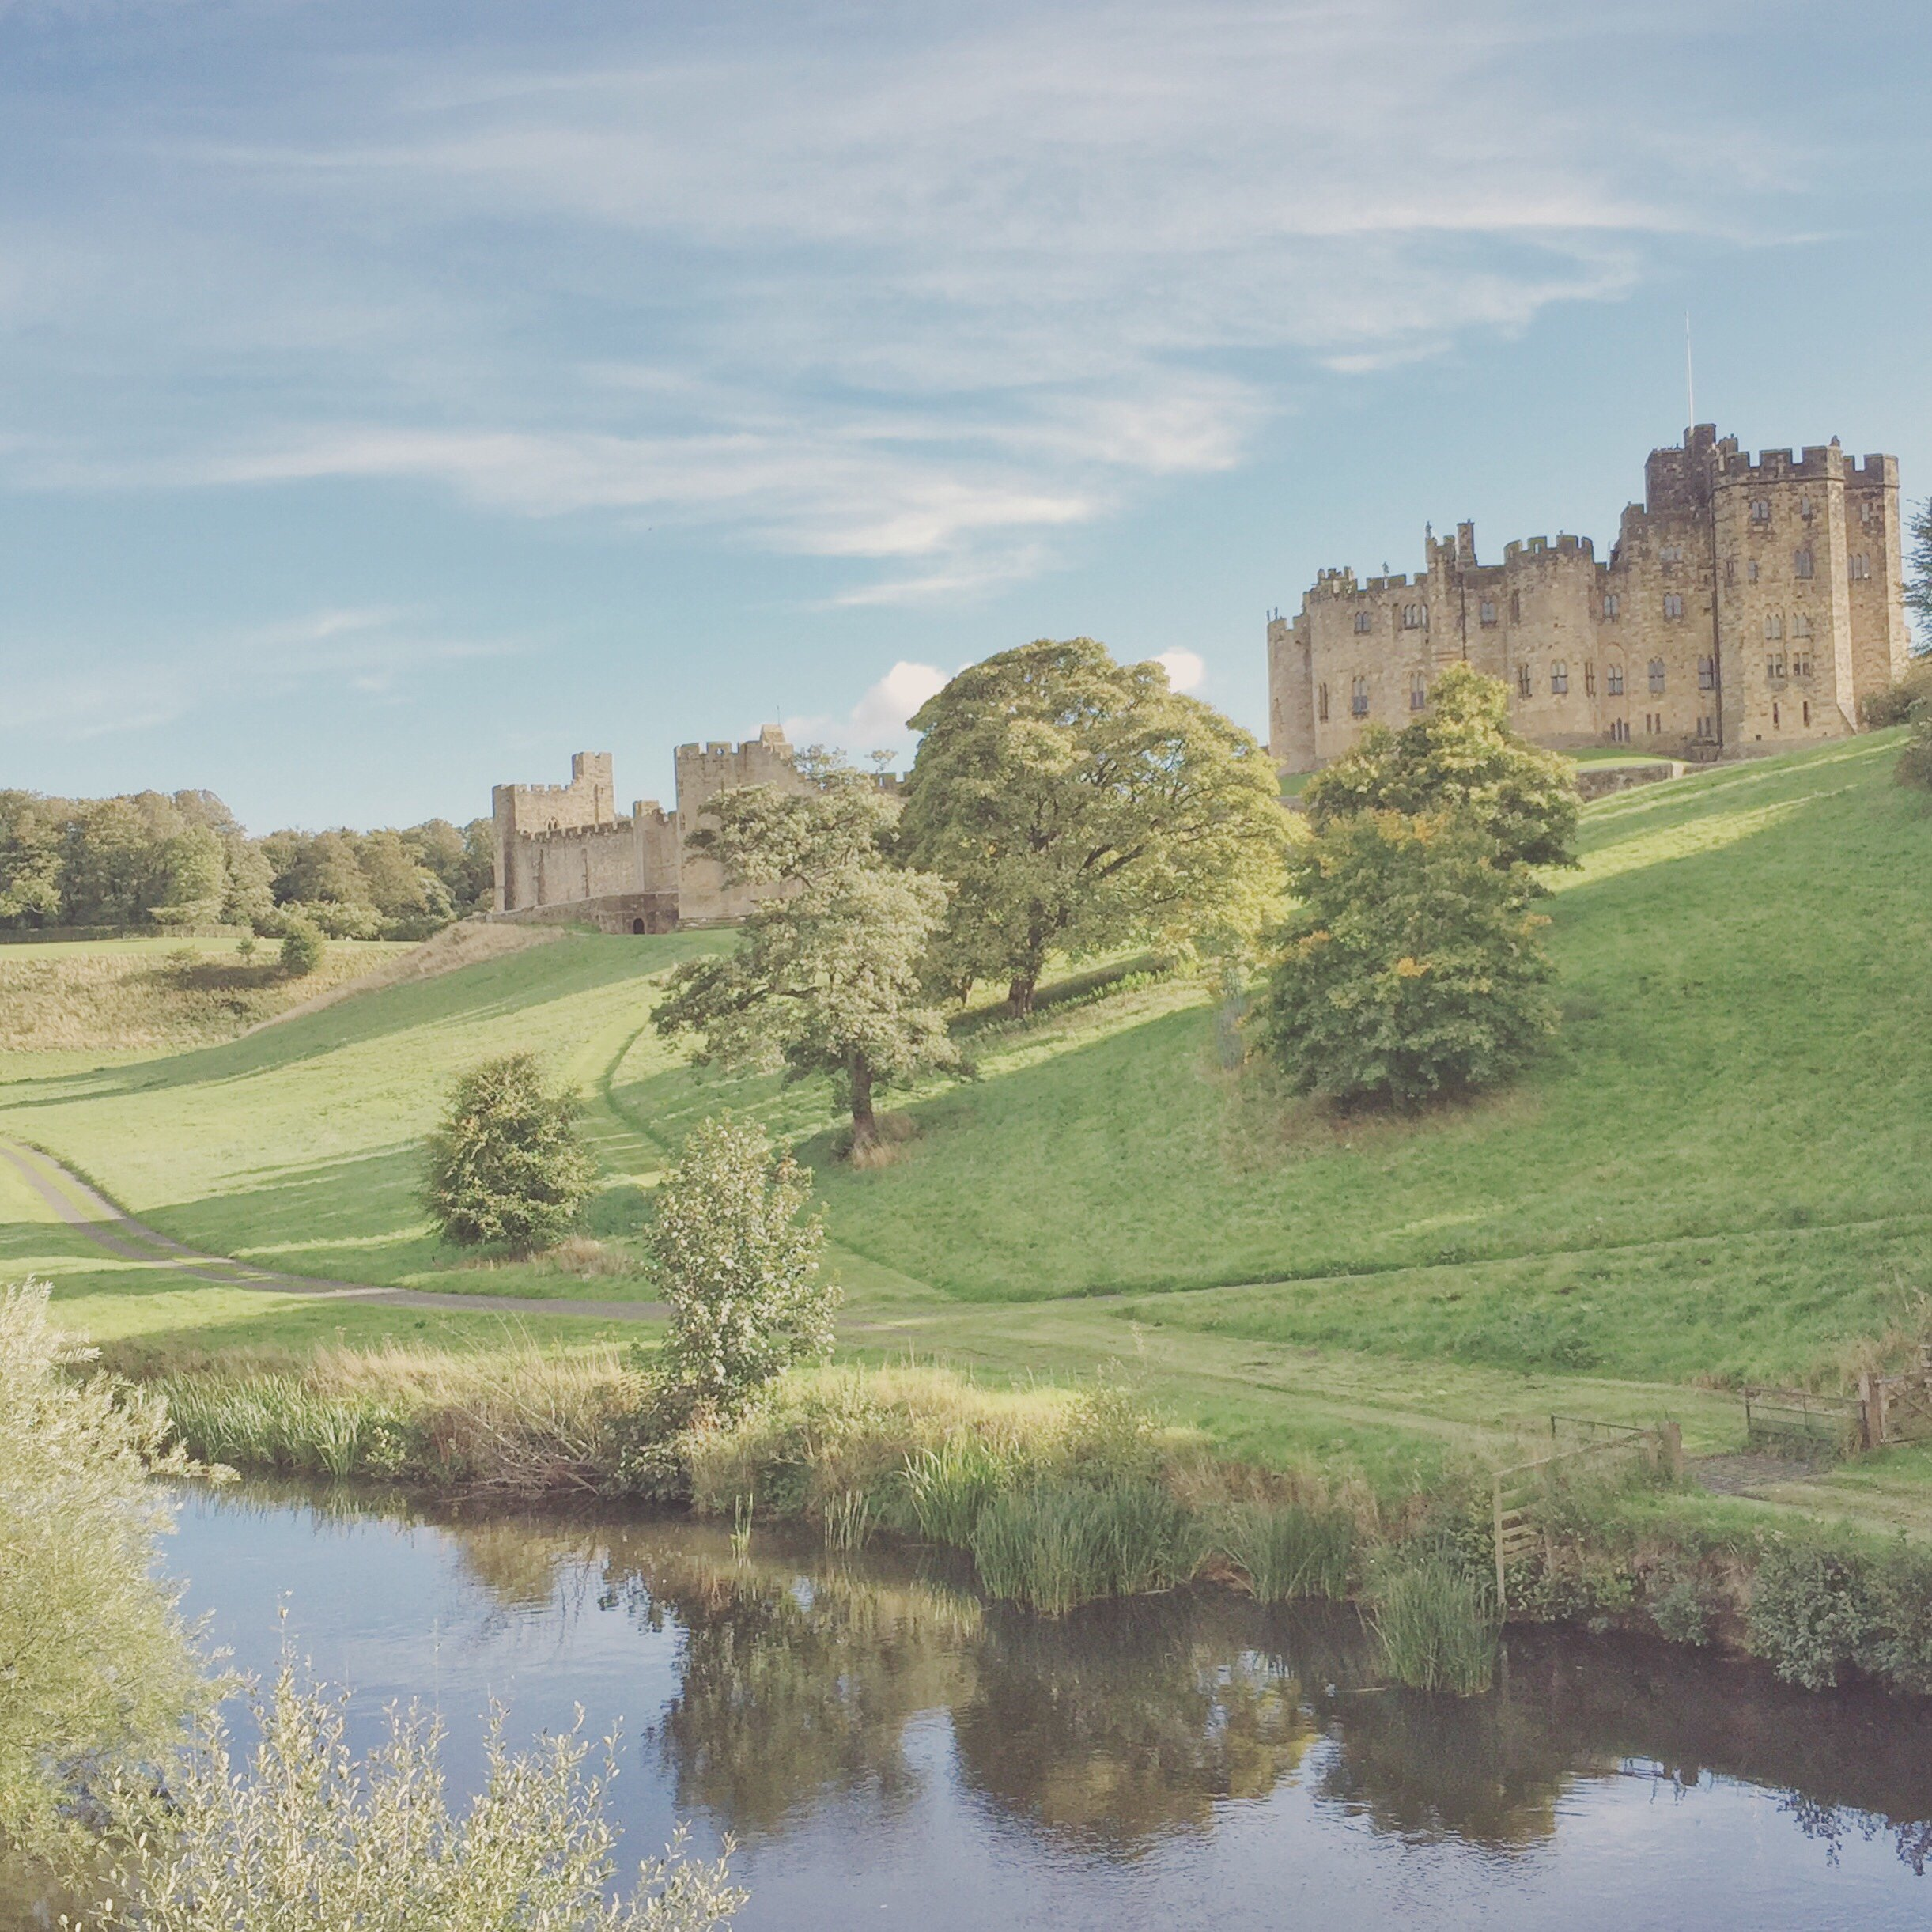 Alnwich Castle - also known as Hogwarts - in beautiful countryside surroundings